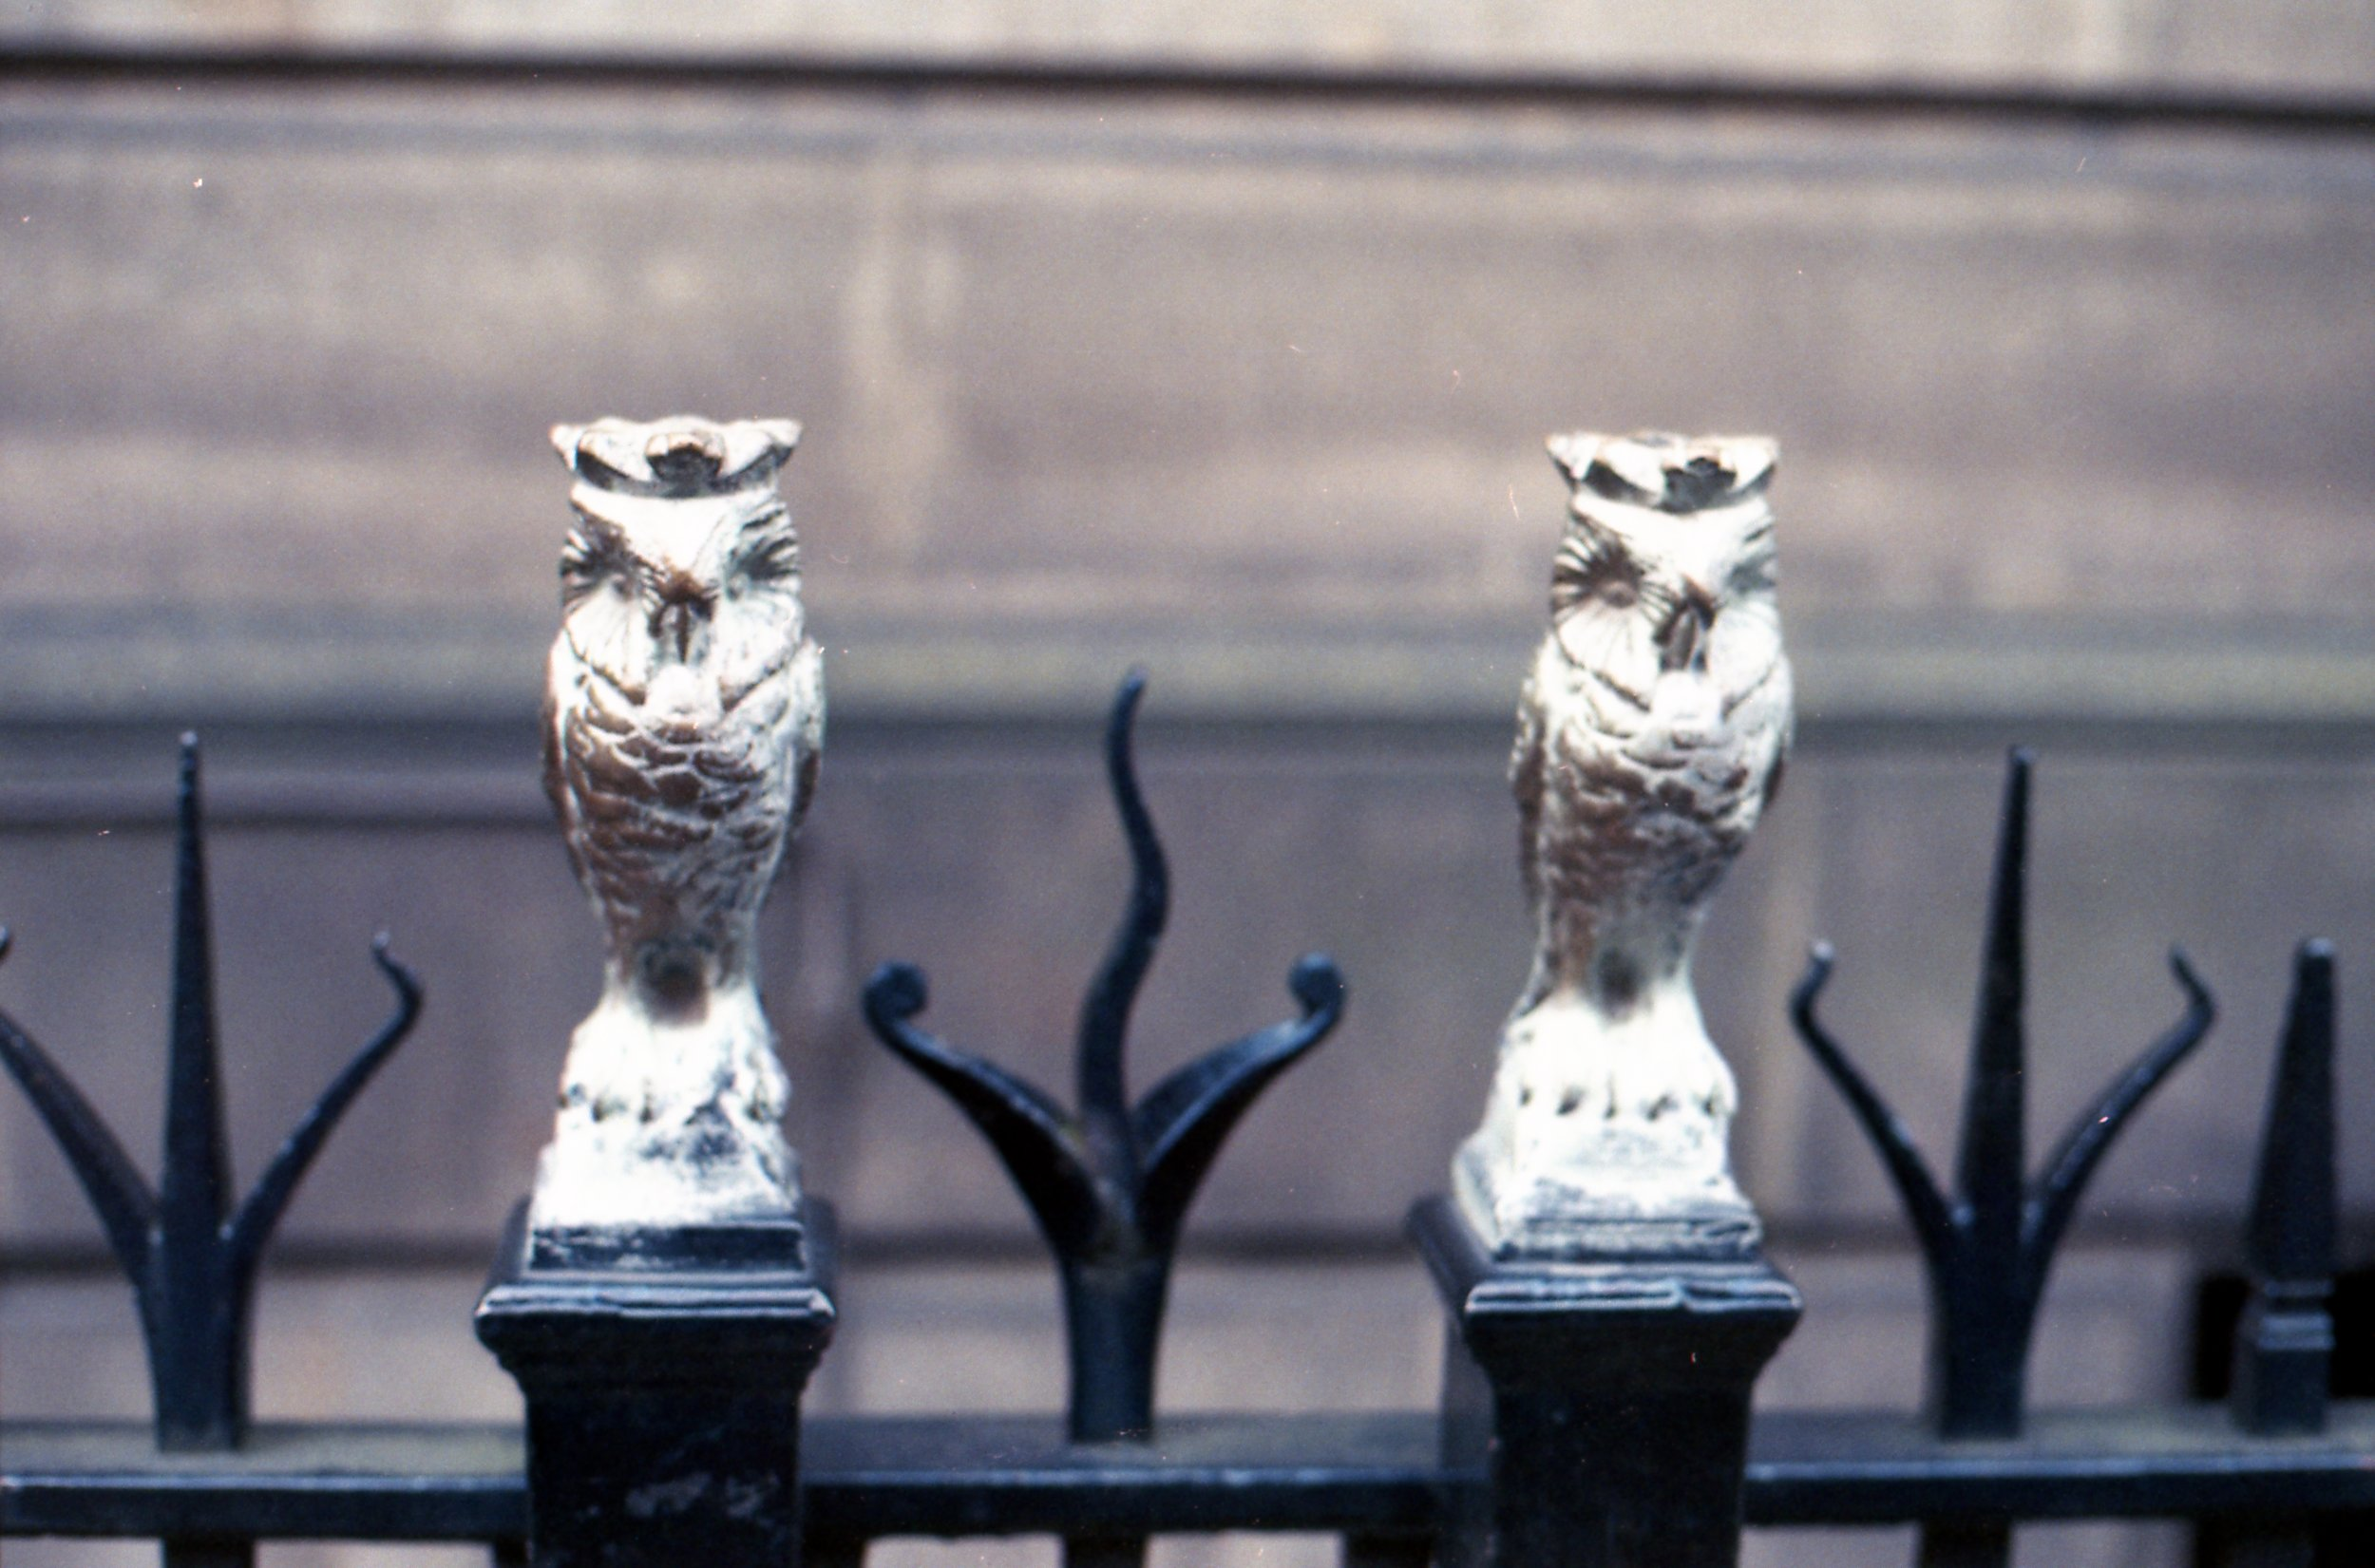 209/366 - I've mentioned  before that owls are a thing in Leeds  - so here are two more. Aren't they pretty!